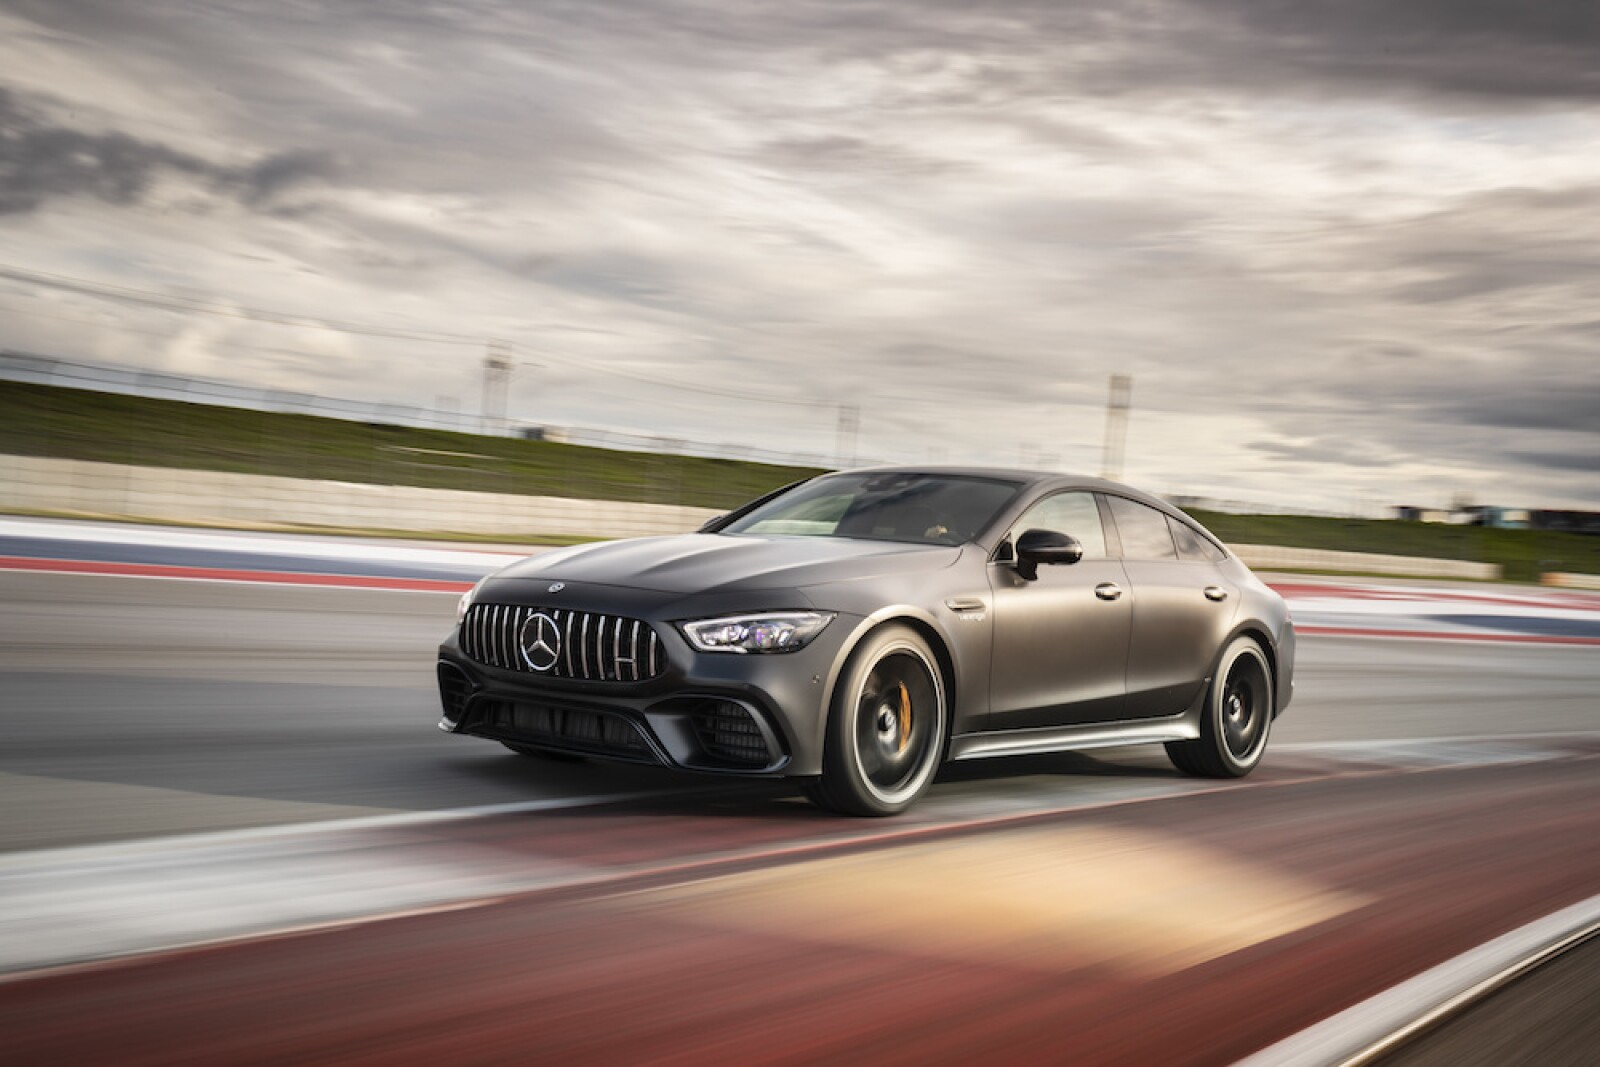 Mercedes-AMG GT 63 S 4MATIC+ 4-Door Coupé. Austin 2018